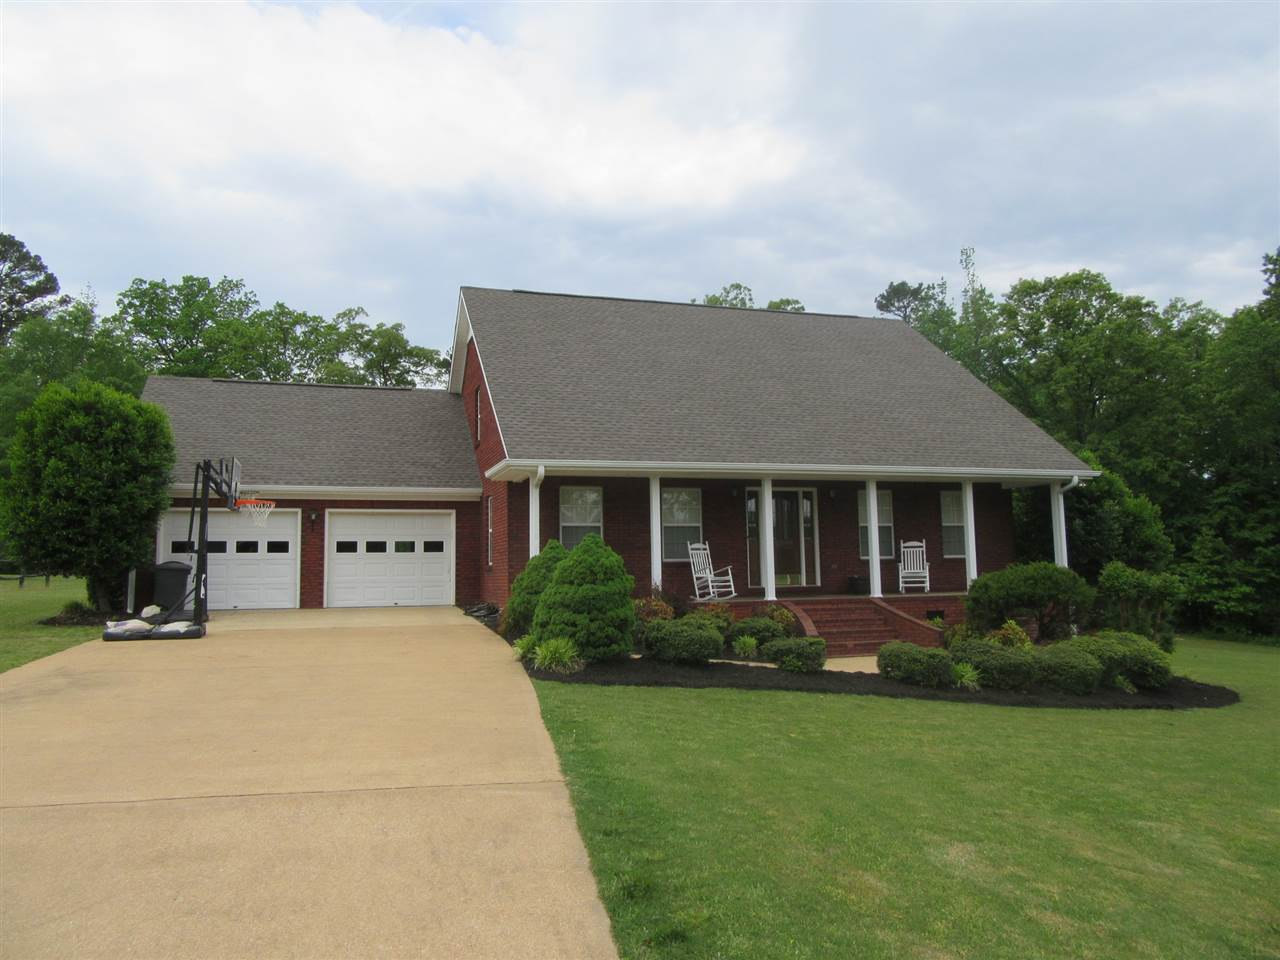 fff88b91a 170 JORDAN GLEN LN, SAVANNAH, TN 38372 – Tiffany Jones Realty Group